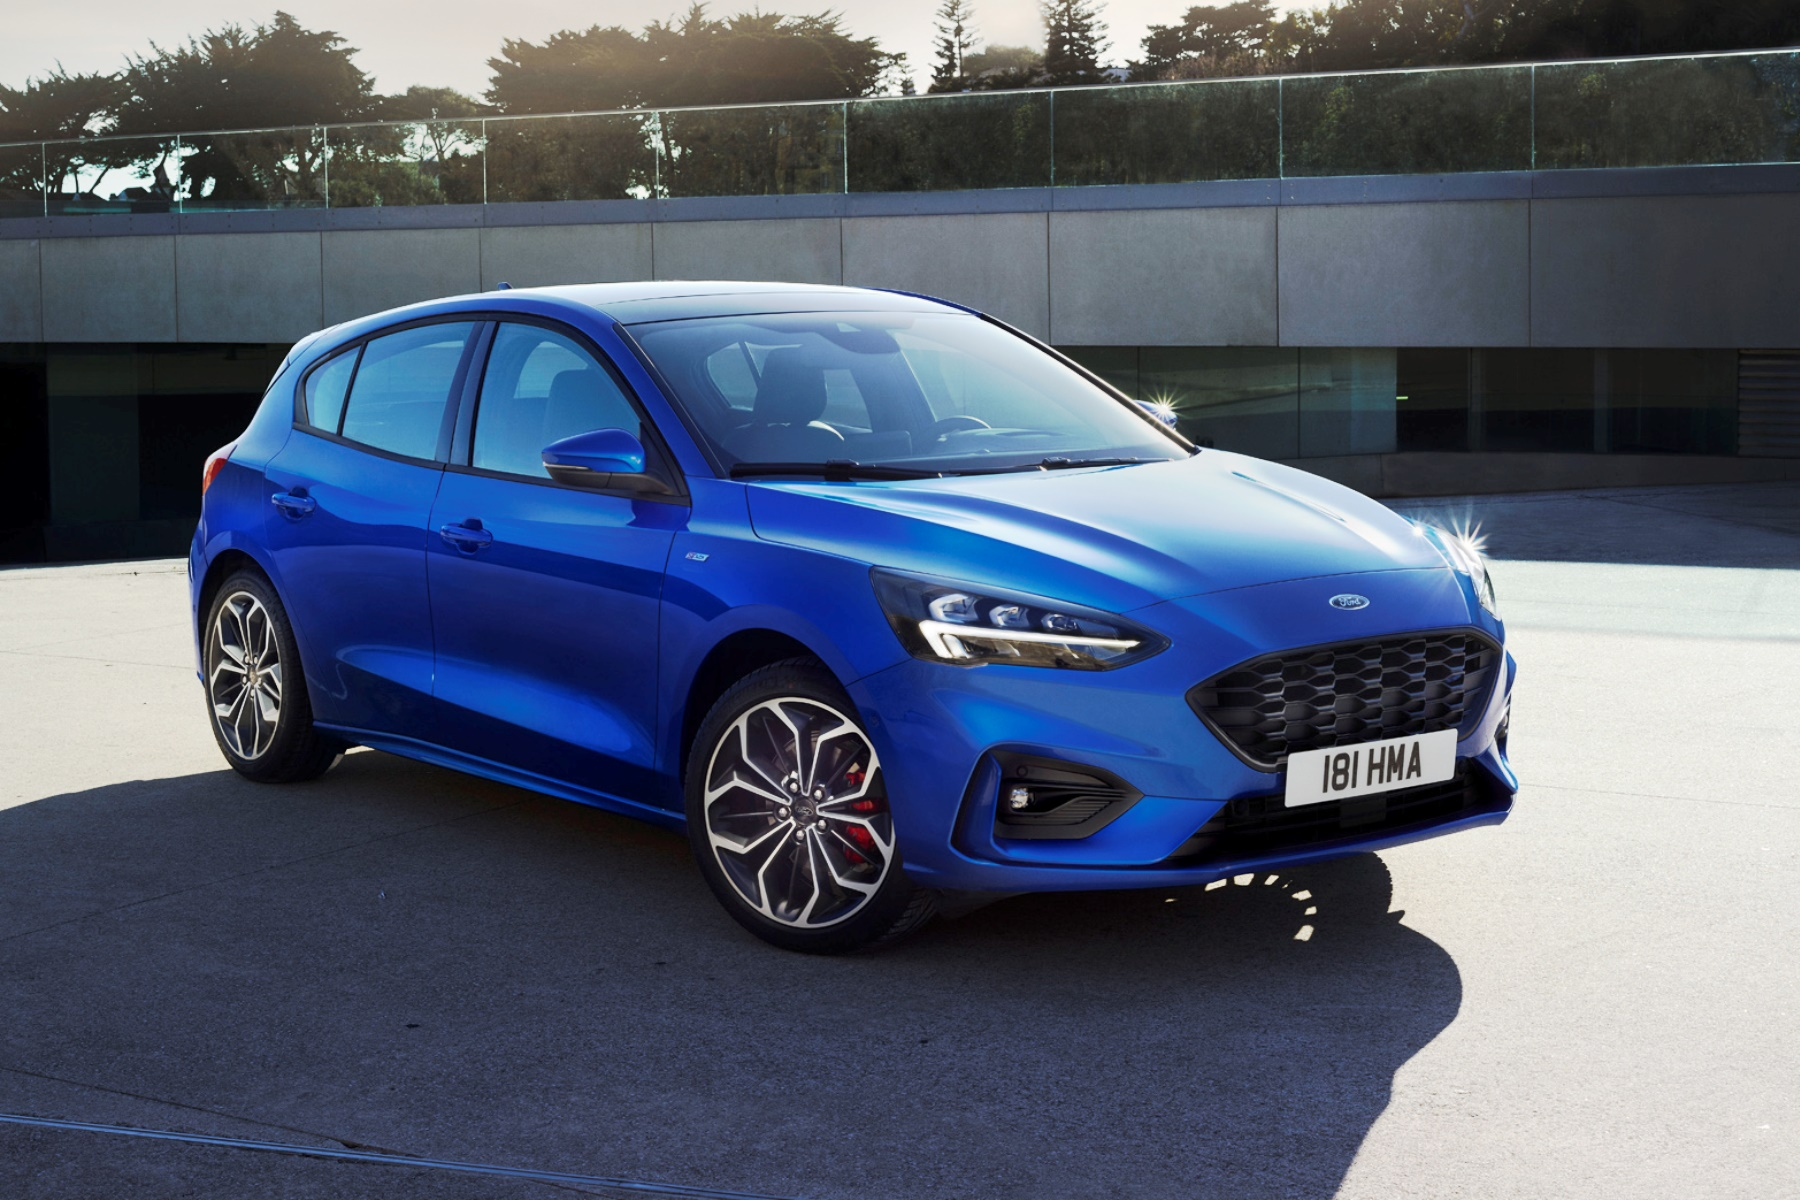 New 2018 Ford Focus officially revealed